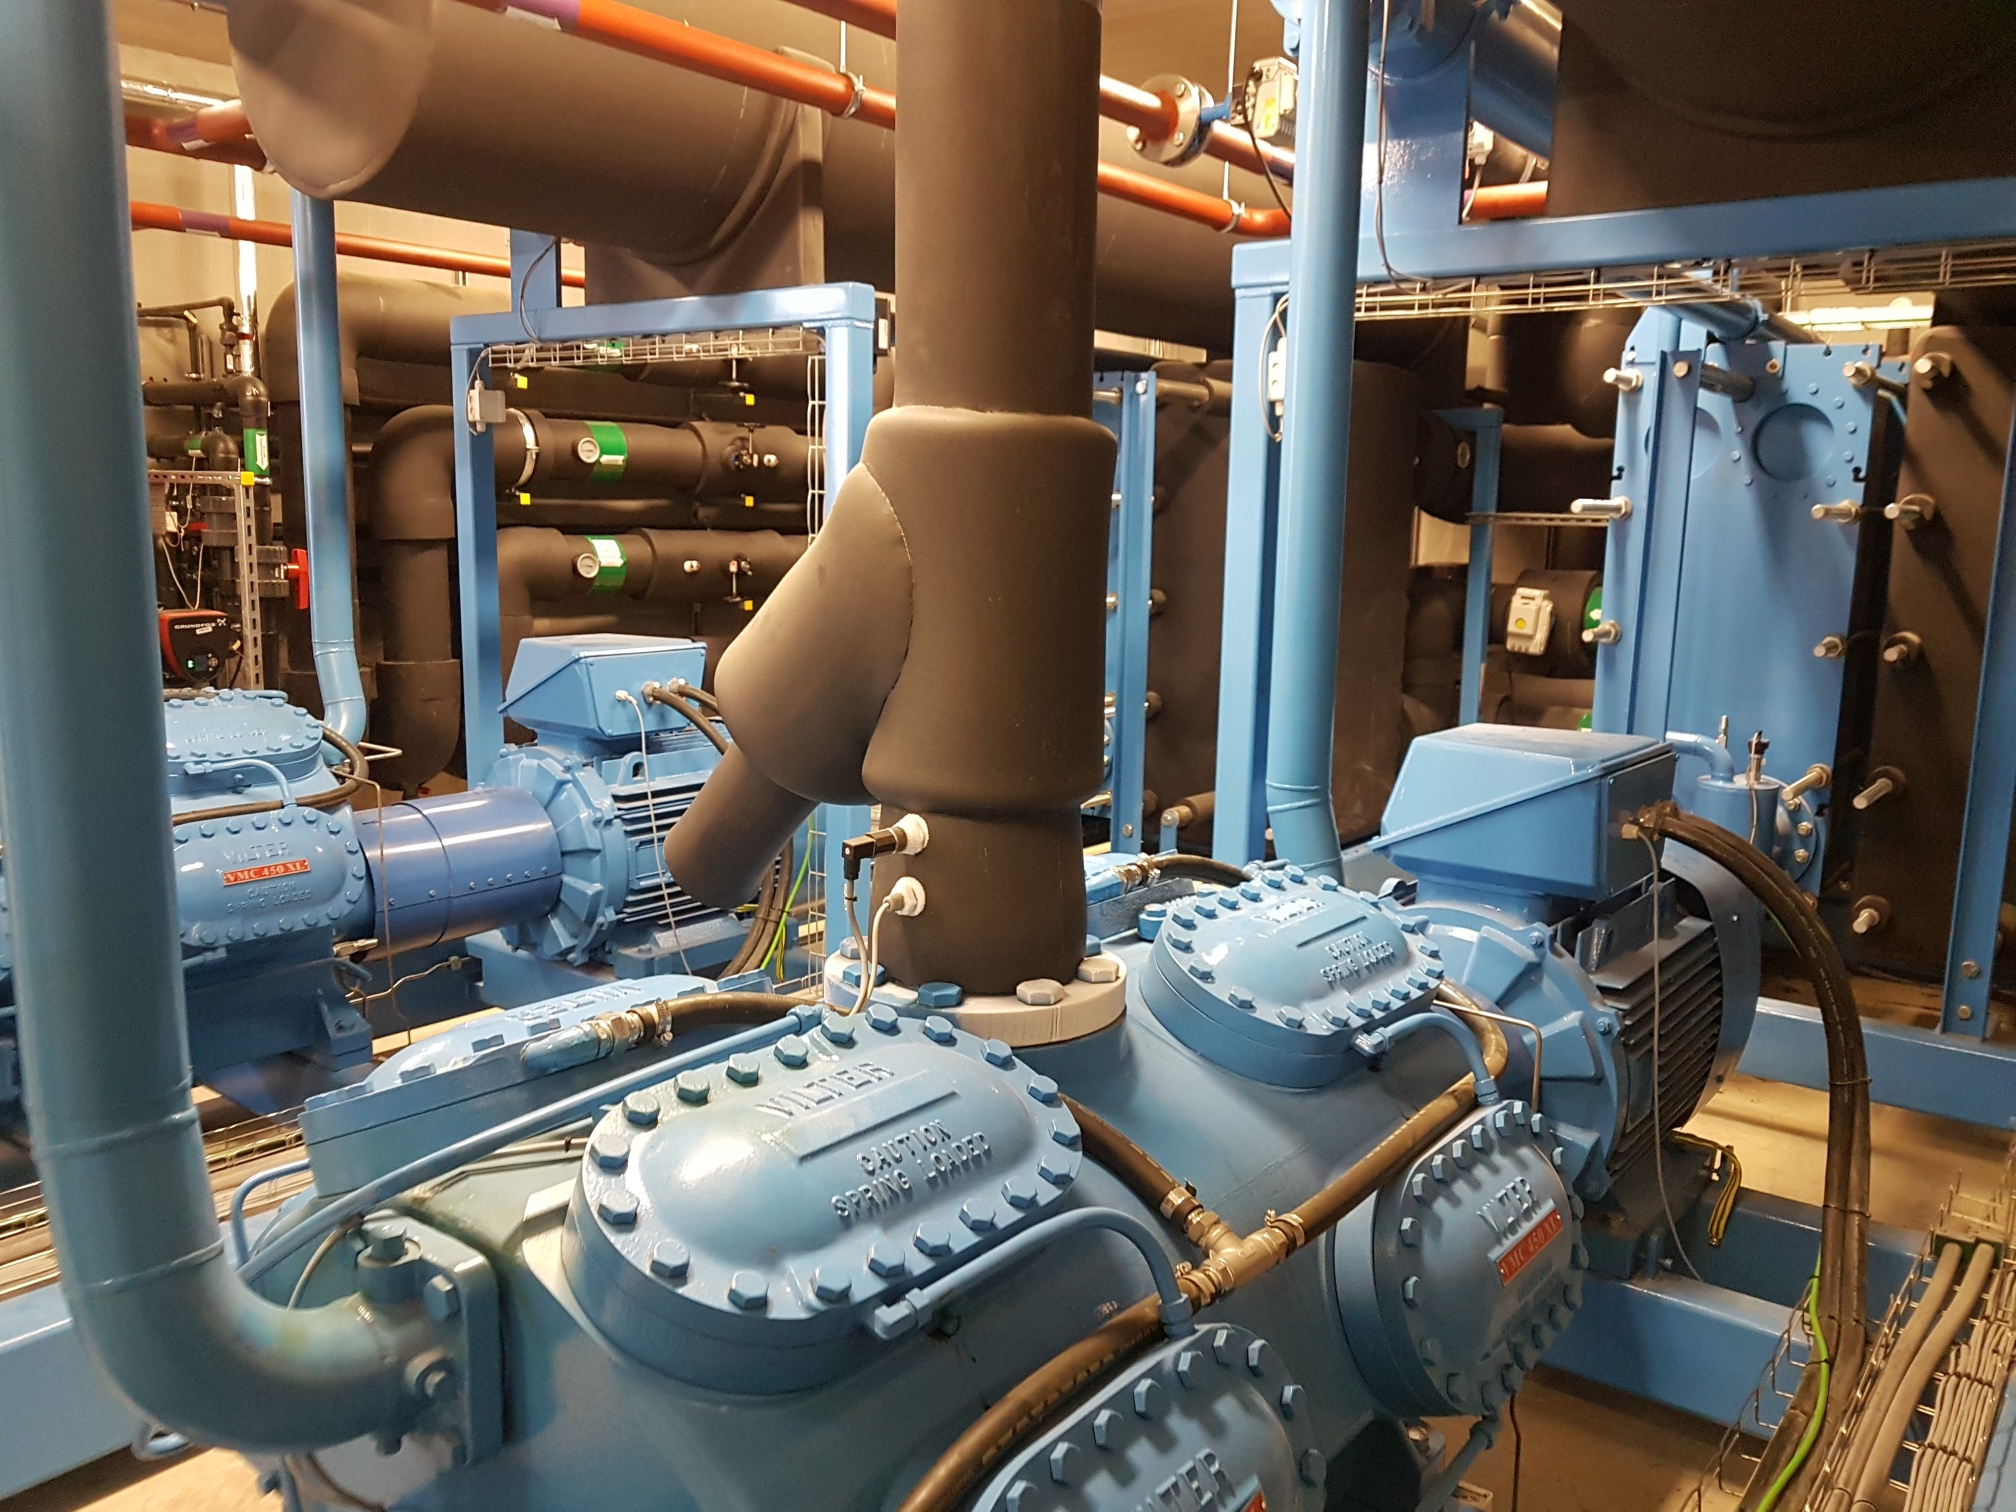 Machine room with blue and black glycol chillers during service maintenance and repair